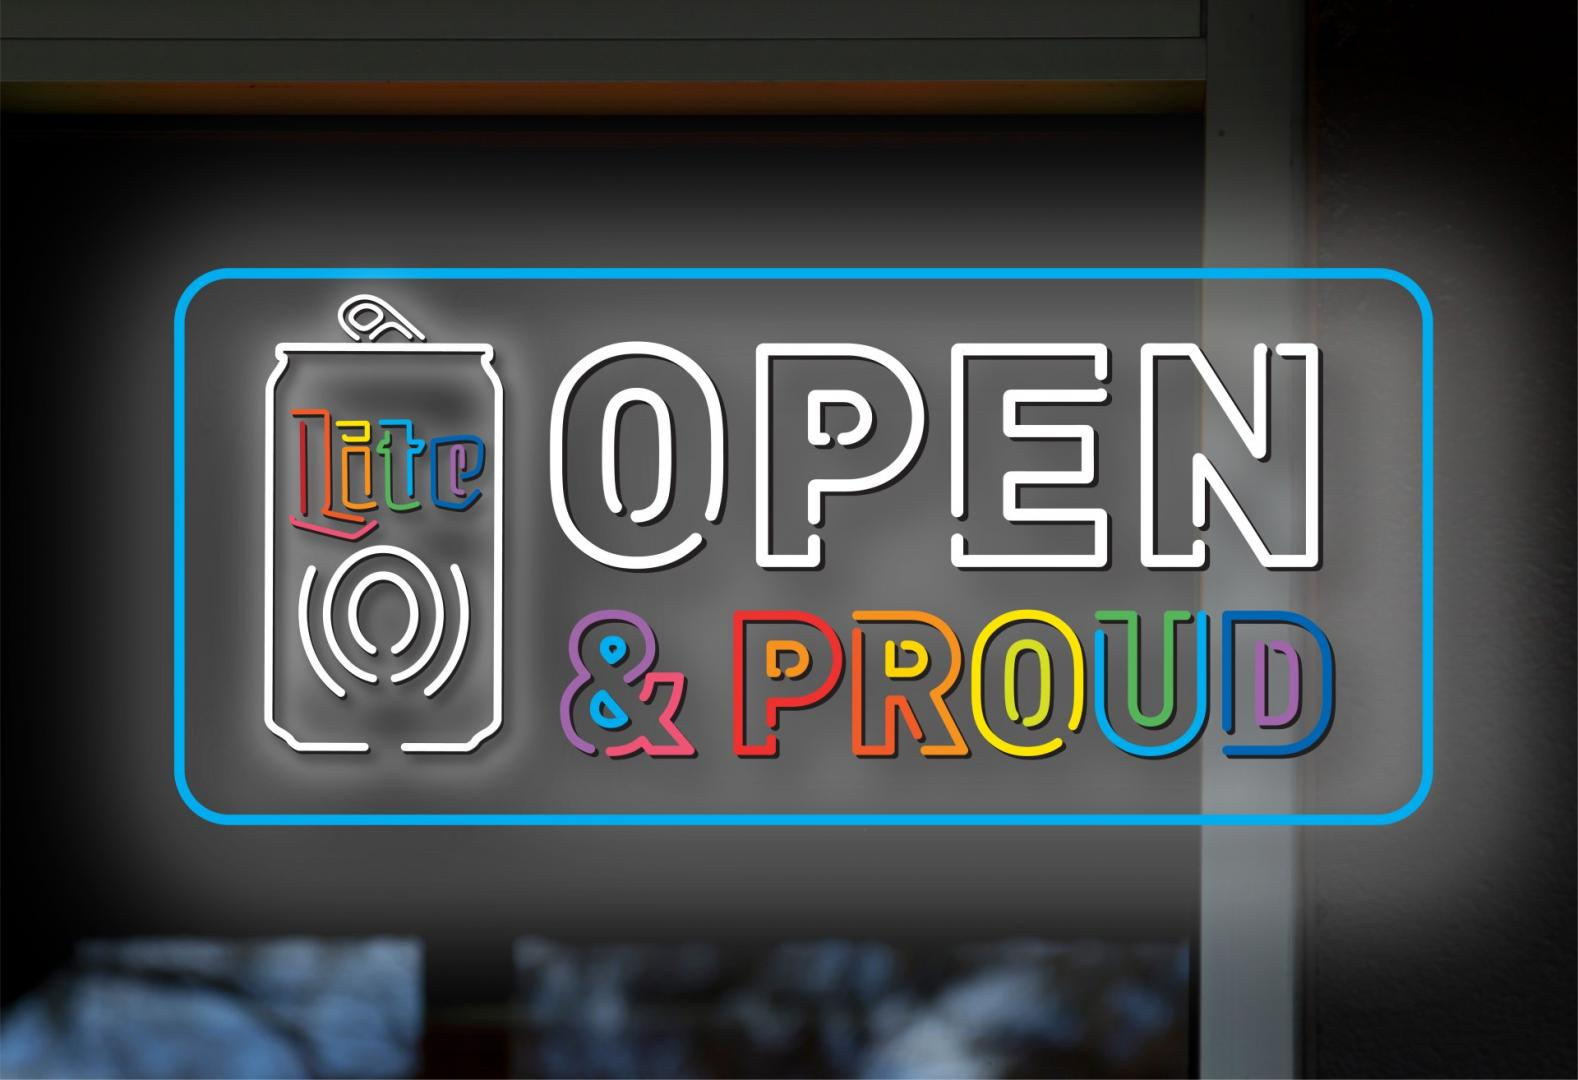 Open and Proud logo